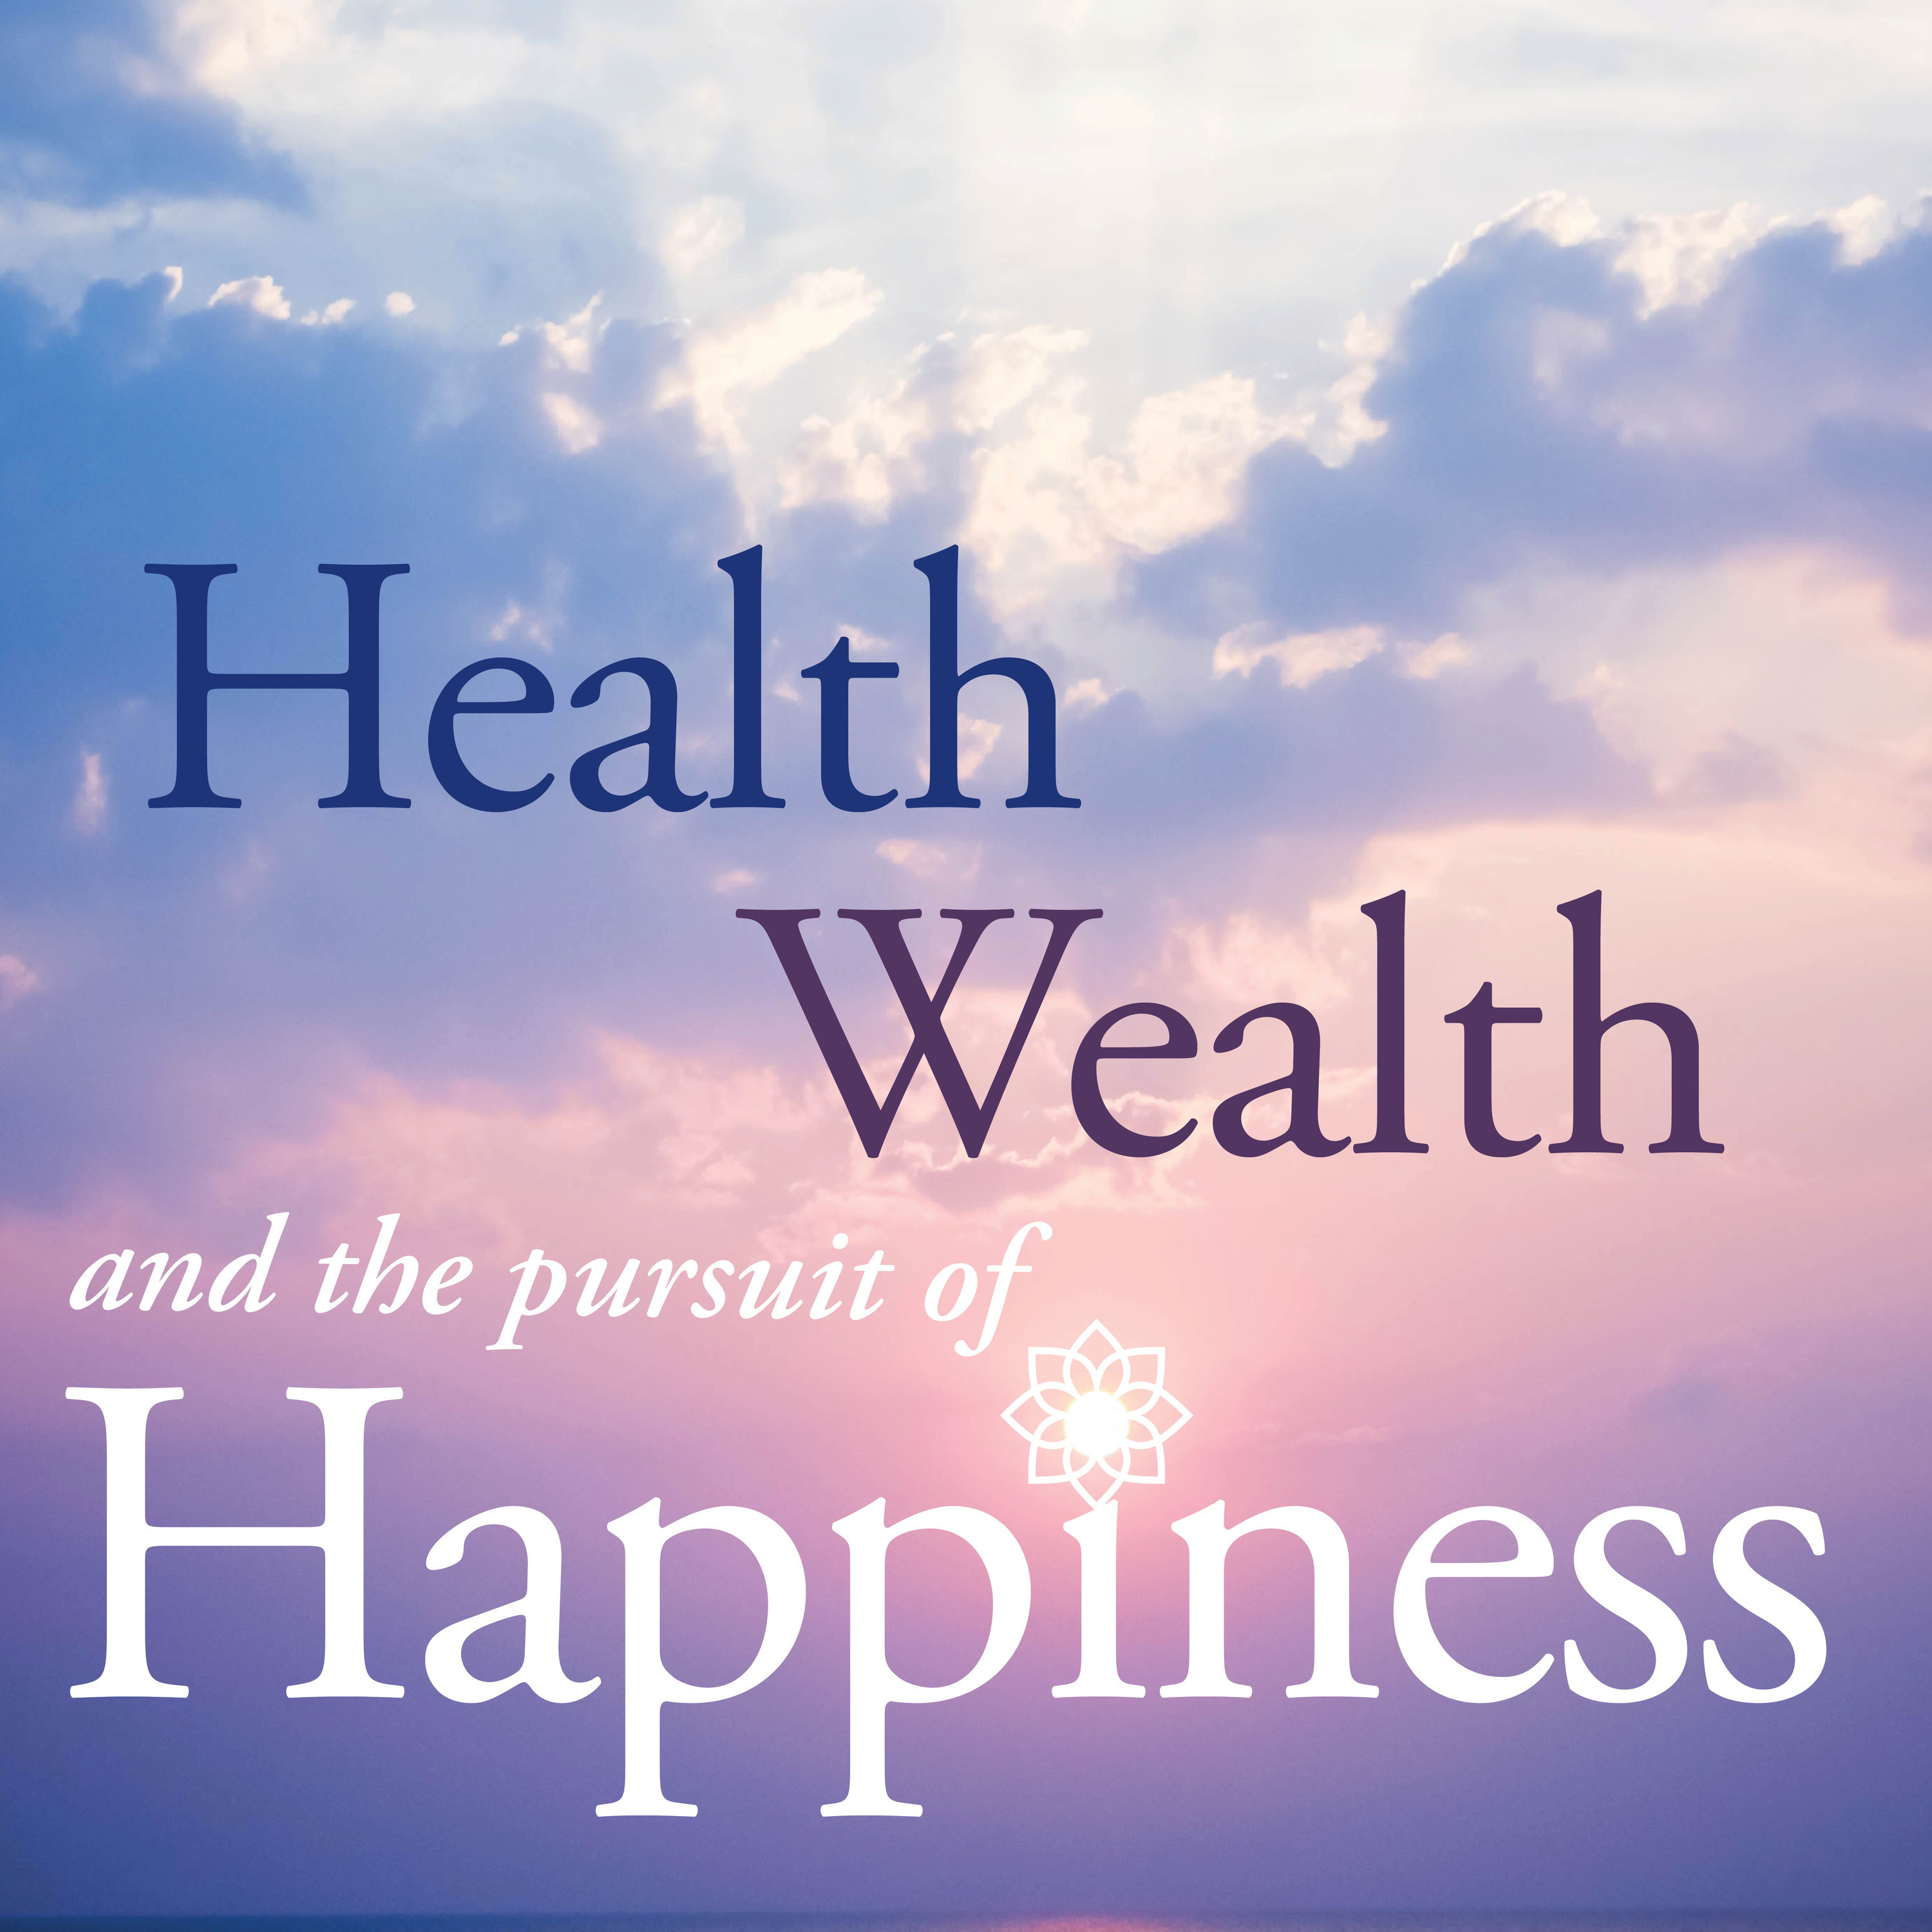 Health, Wealth and the Pursuit of Happiness